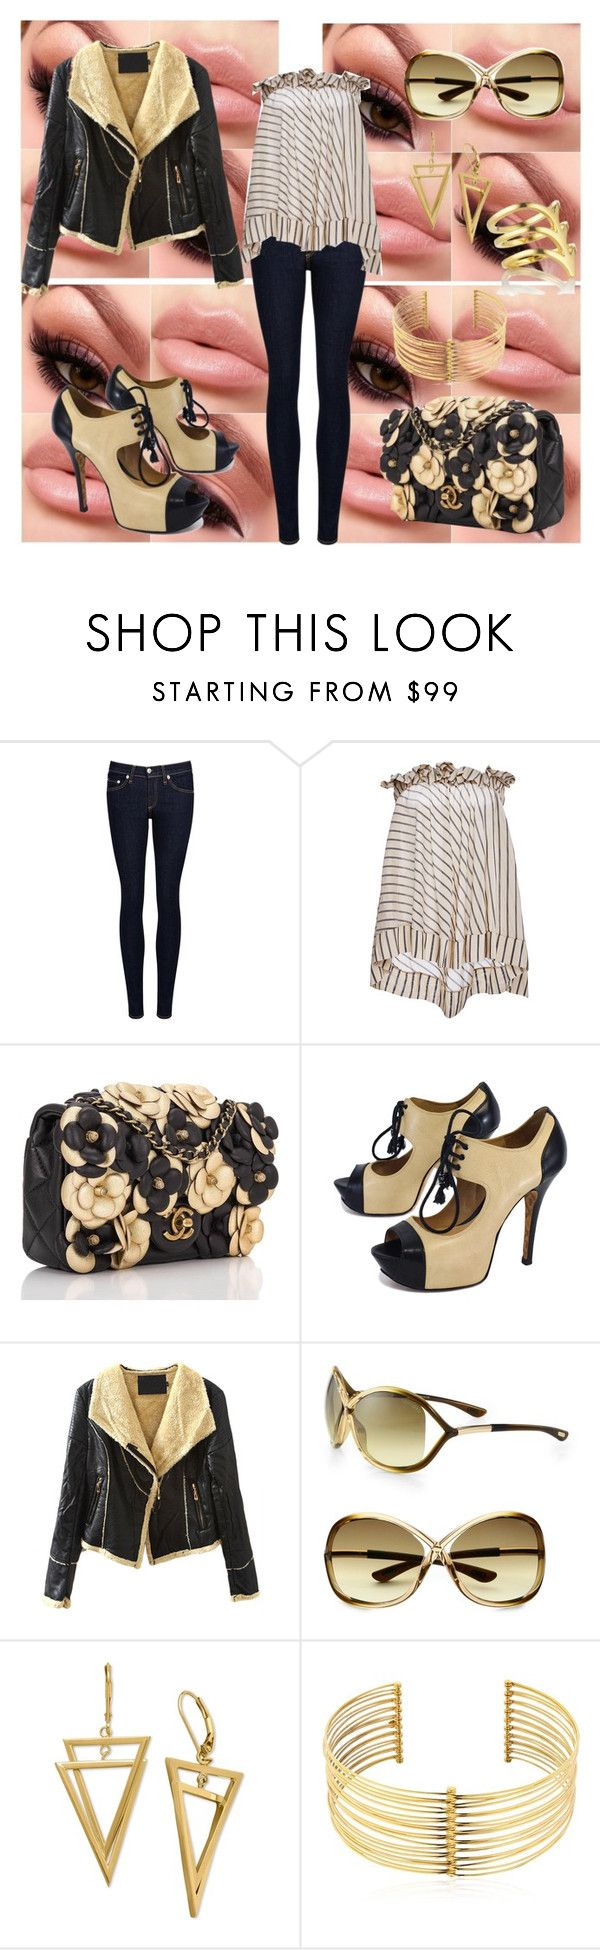 """""""Untitled #694"""" by mentalterrorist on Polyvore featuring rag & bone/JEAN, lila.eugenie, Chanel, L.A.M.B., Tom Ford, REMINISCENCE and Smith/Grey"""